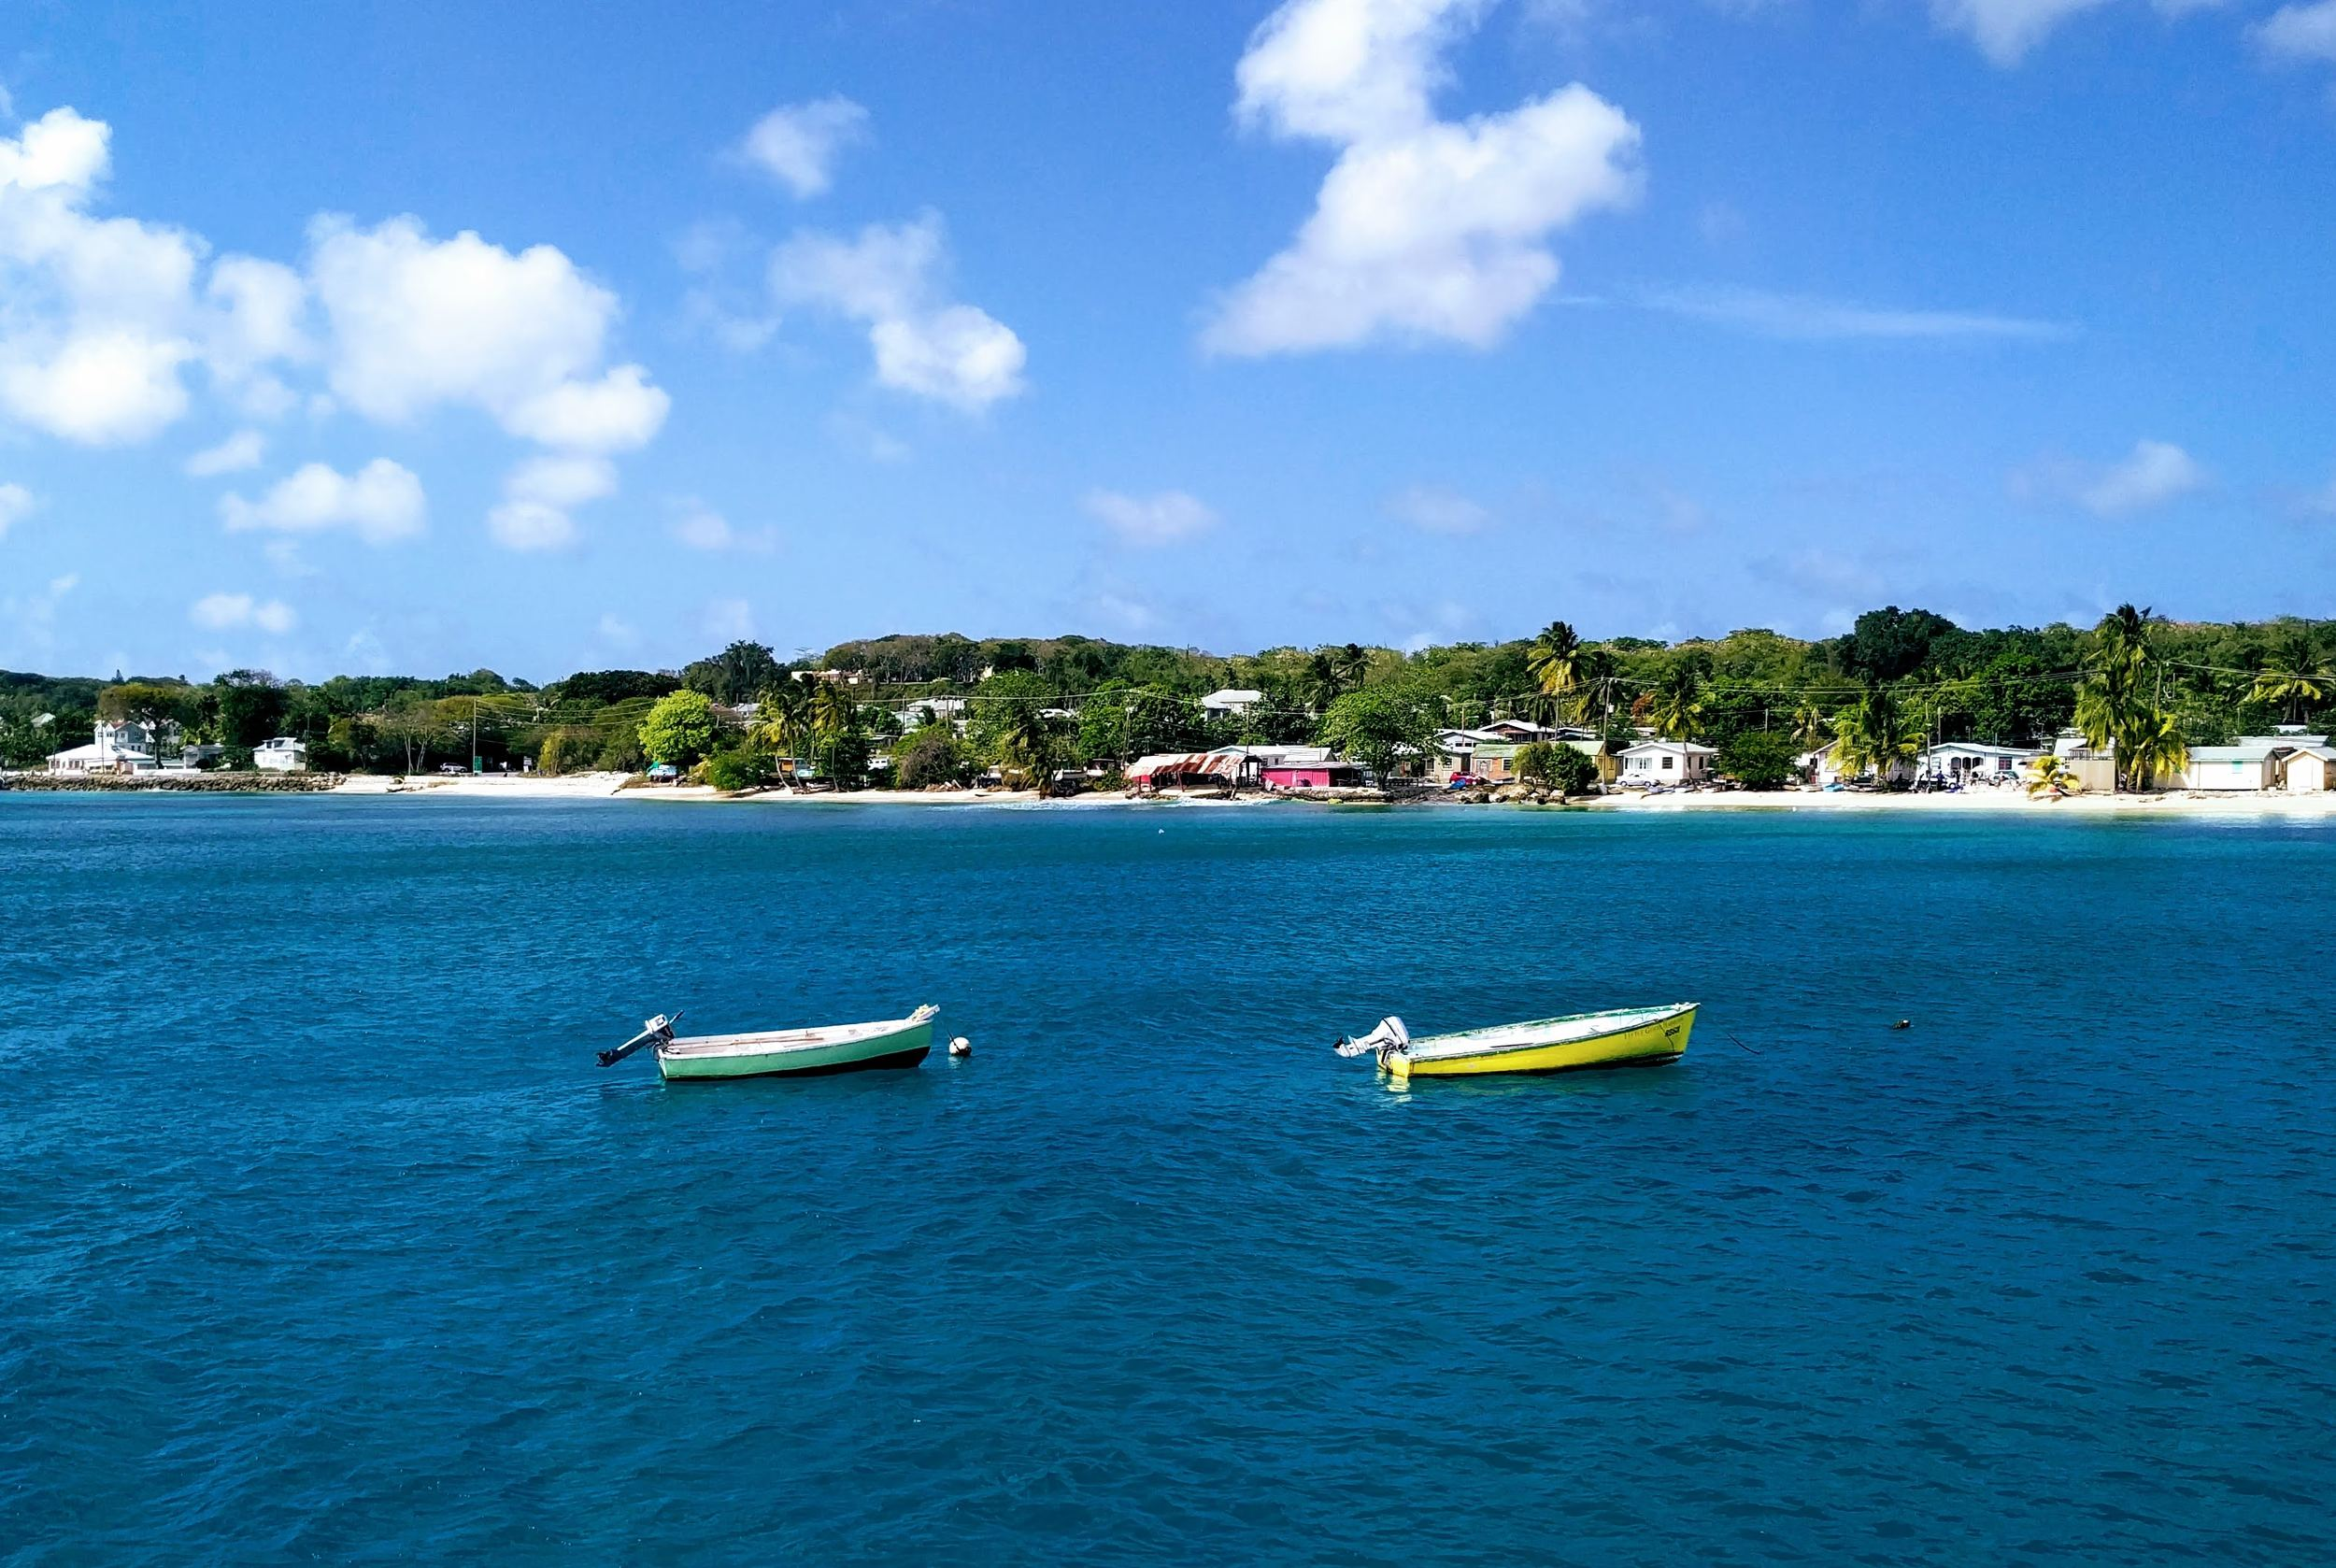 List of Best All-Inclusive Resort and Hotel in Barbados